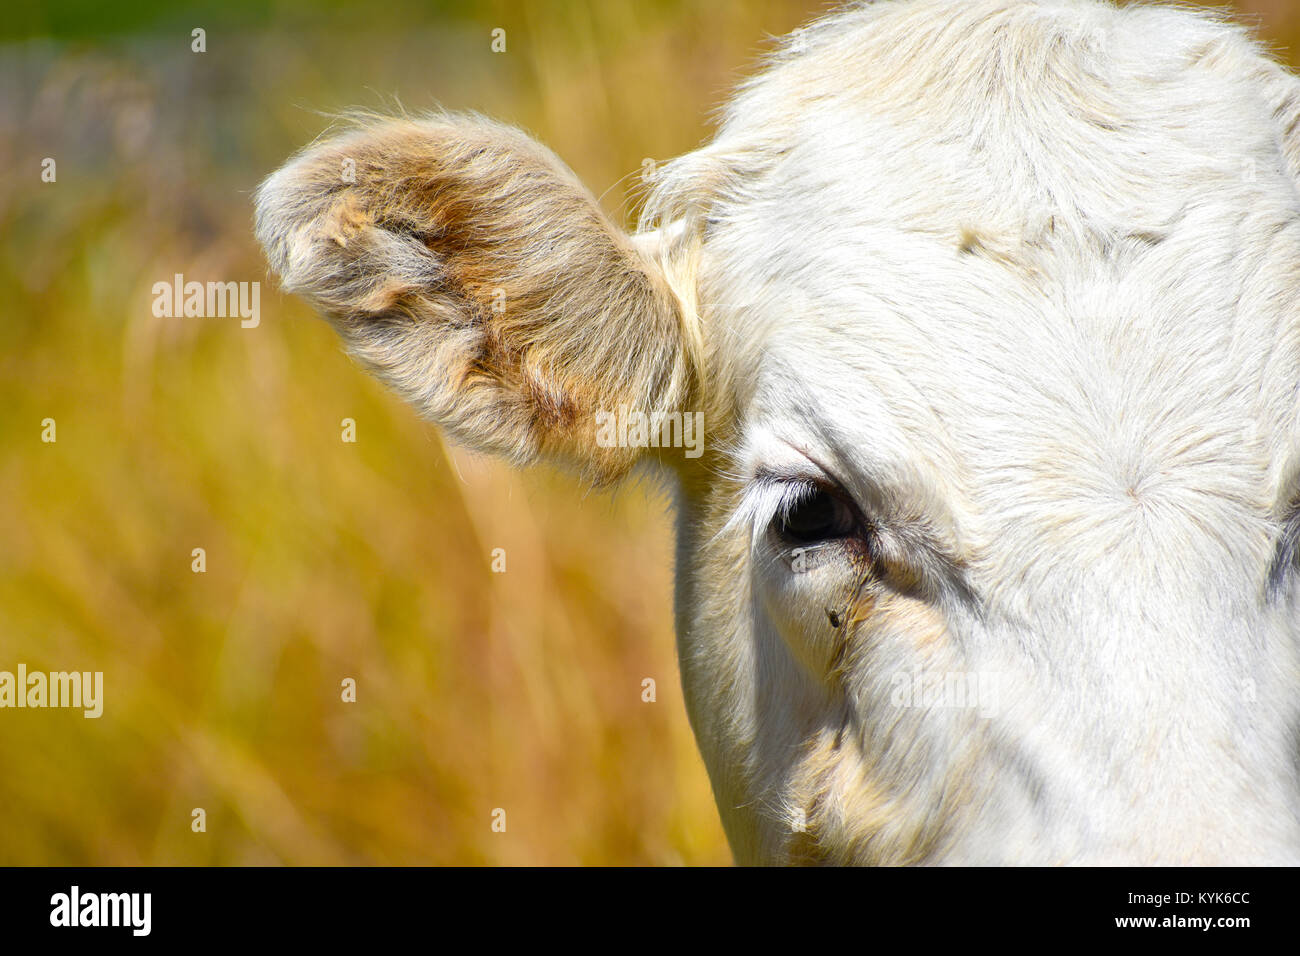 A white bull cow's face close up showing the ear and eye.  The eye has considerable drainage and a fly has landed - Stock Image